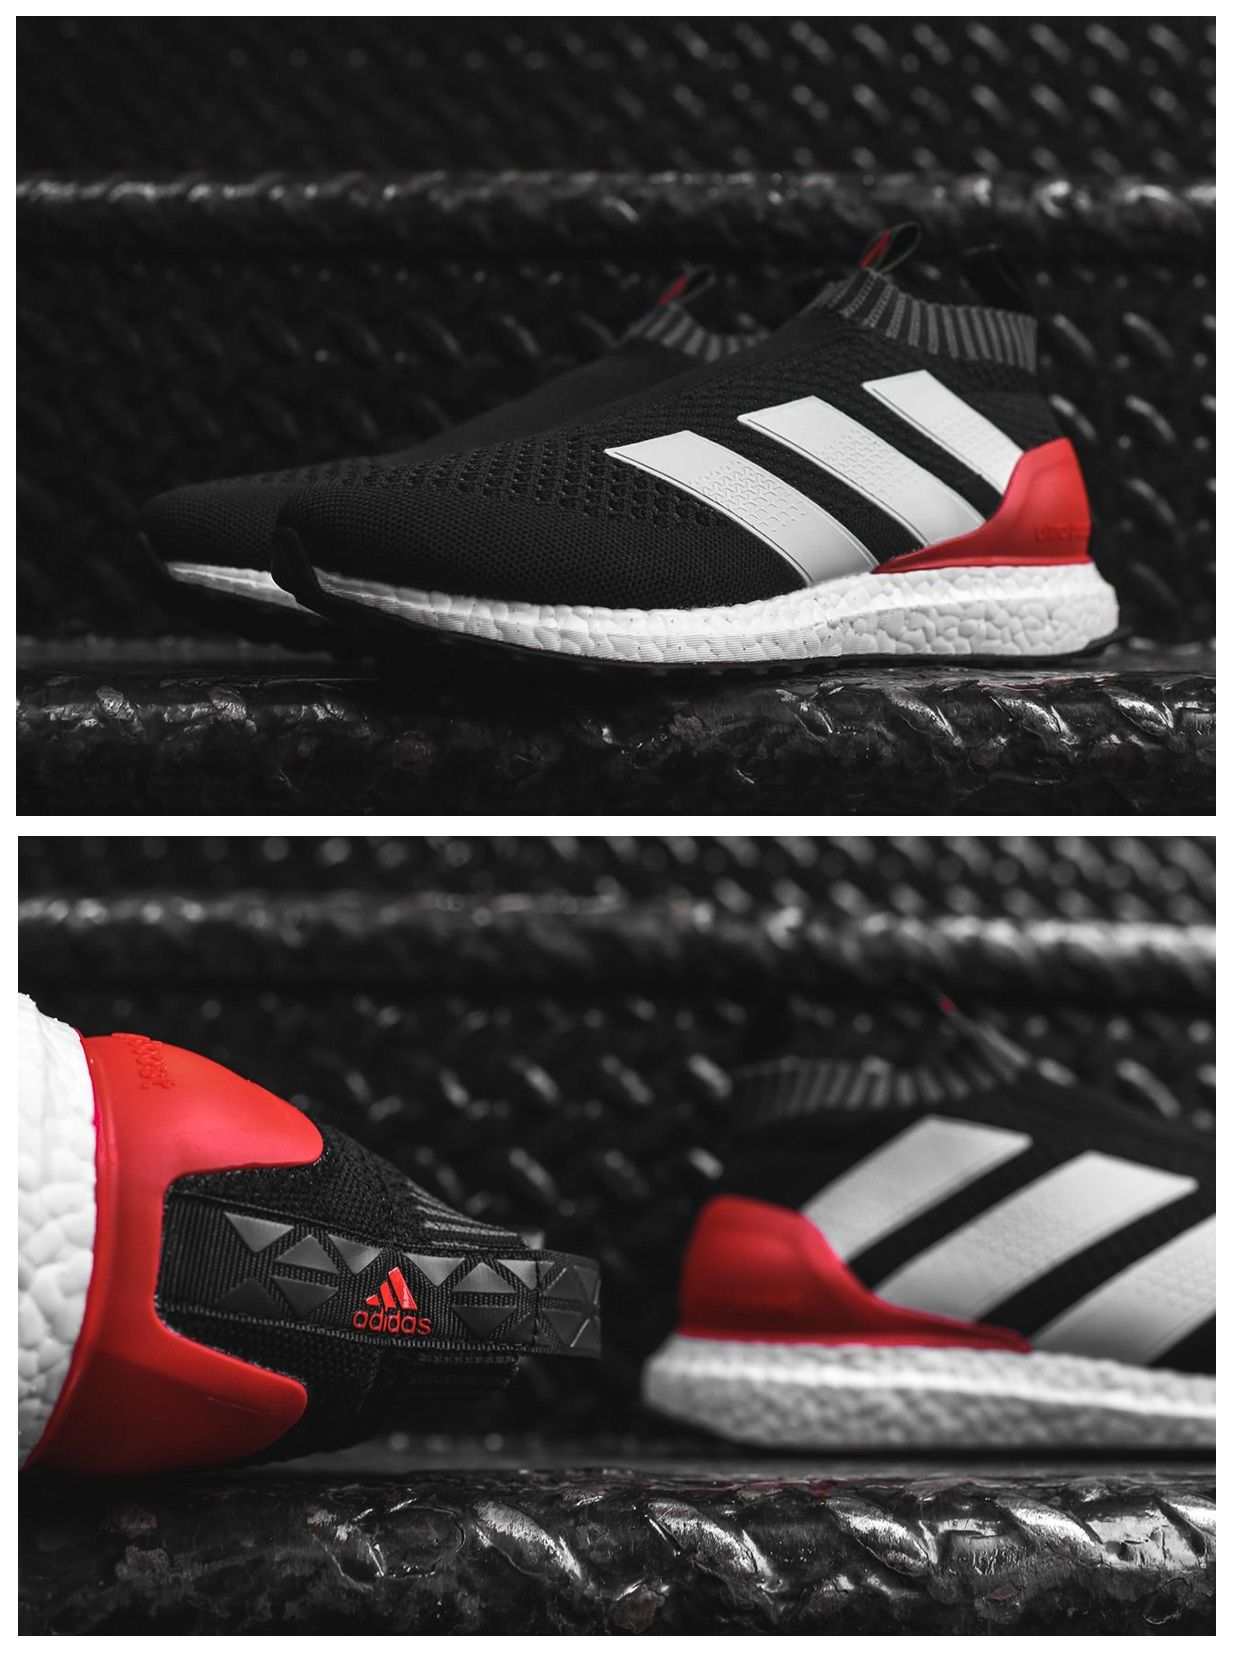 Adidas Ace 17 Pure Control Ultra Boost Adidas Sneakers Adidas Sneakers